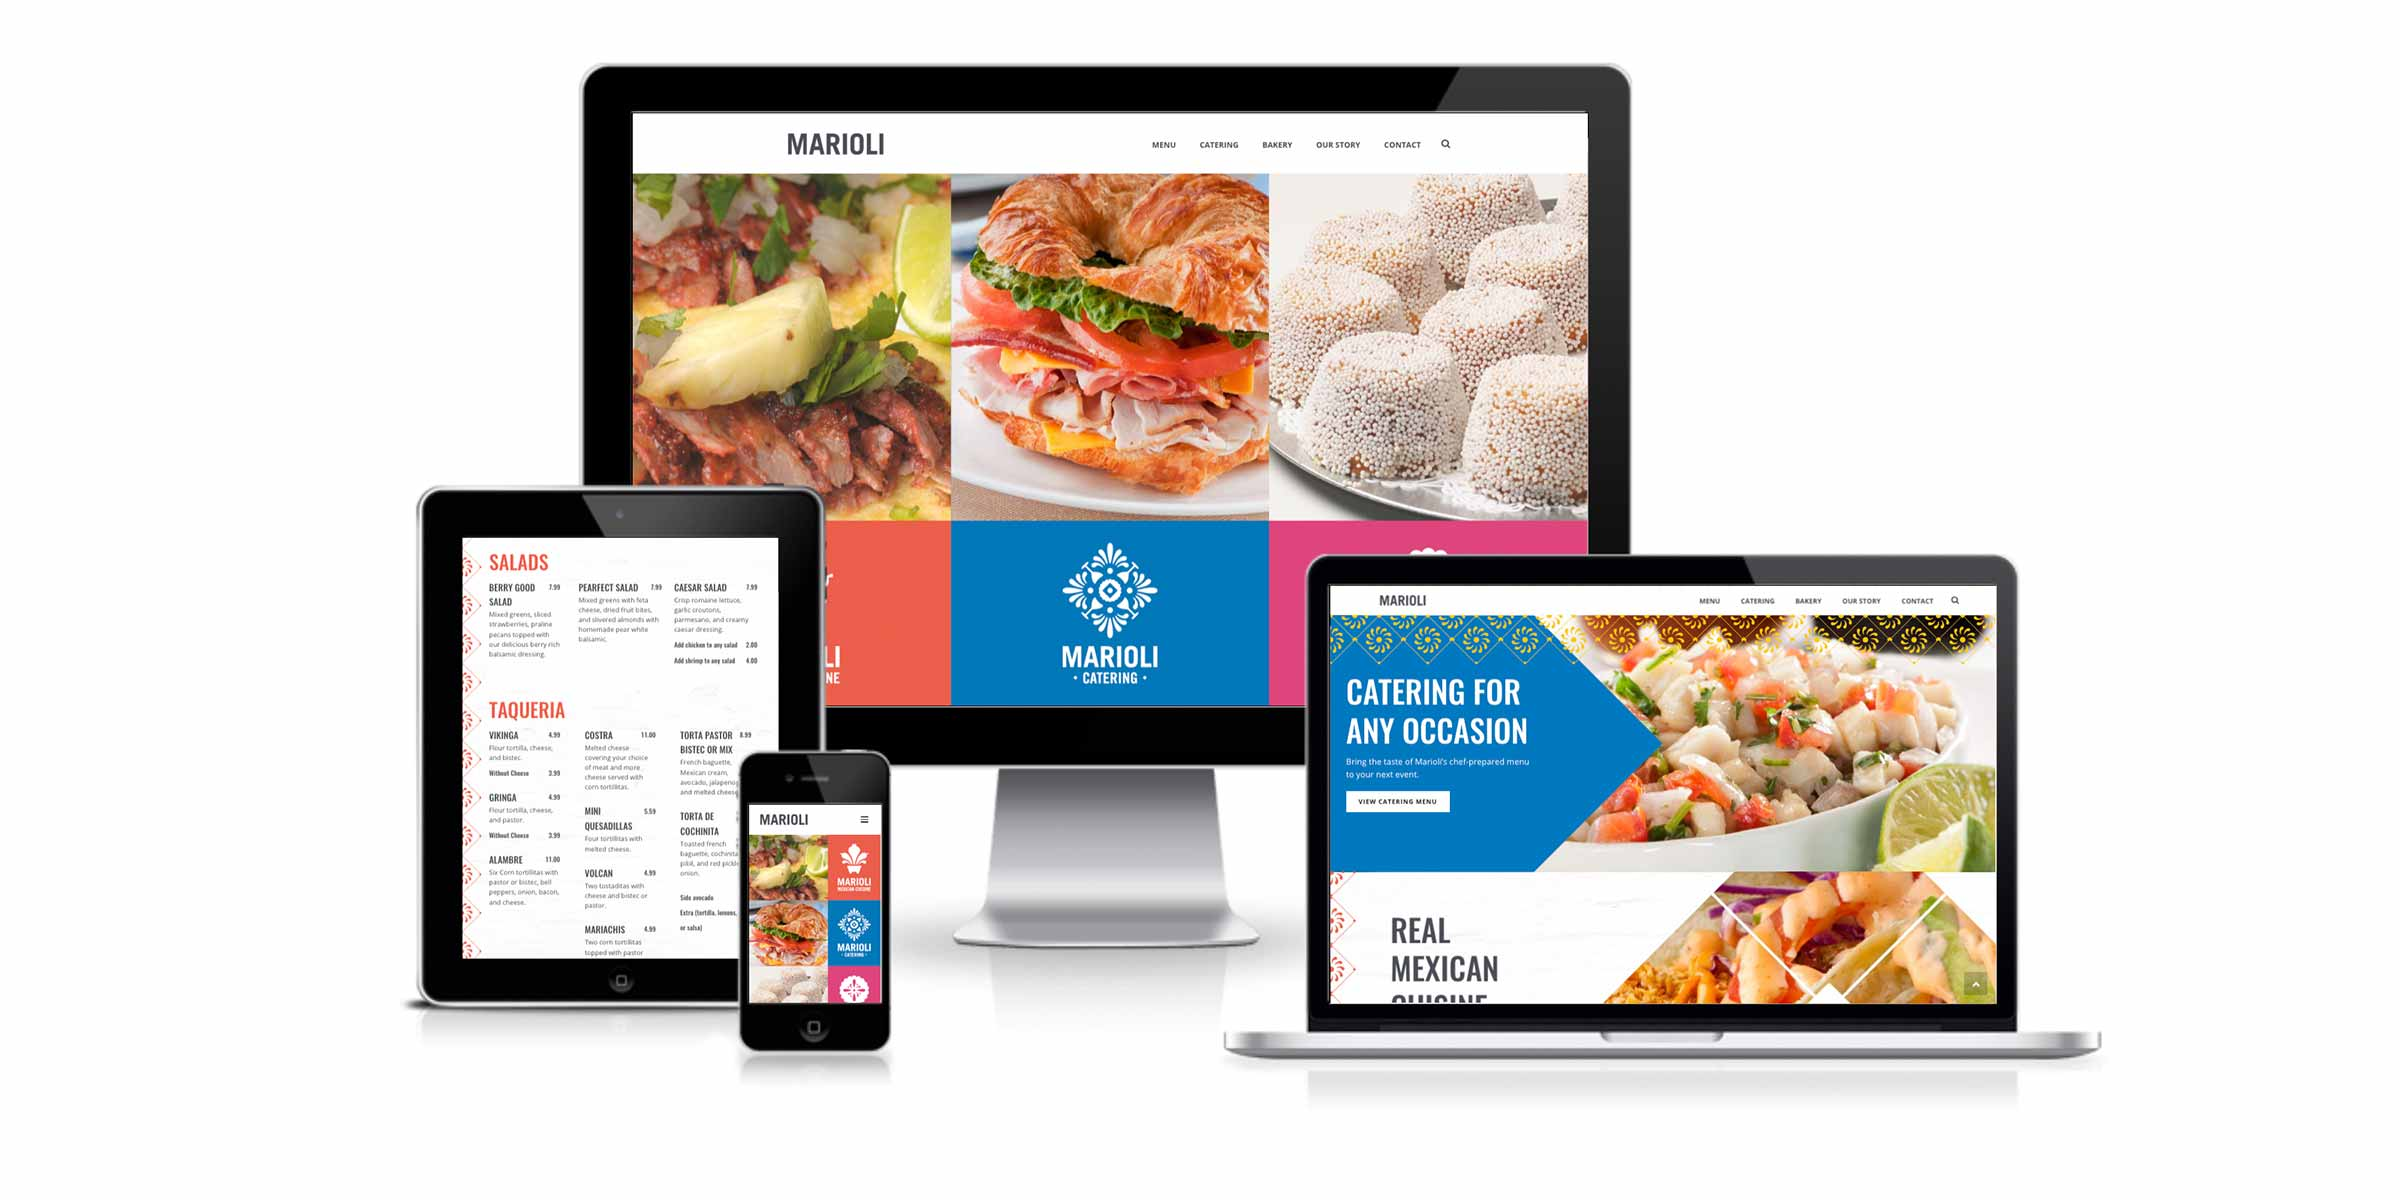 Mariolicuisine.com on multiple devices